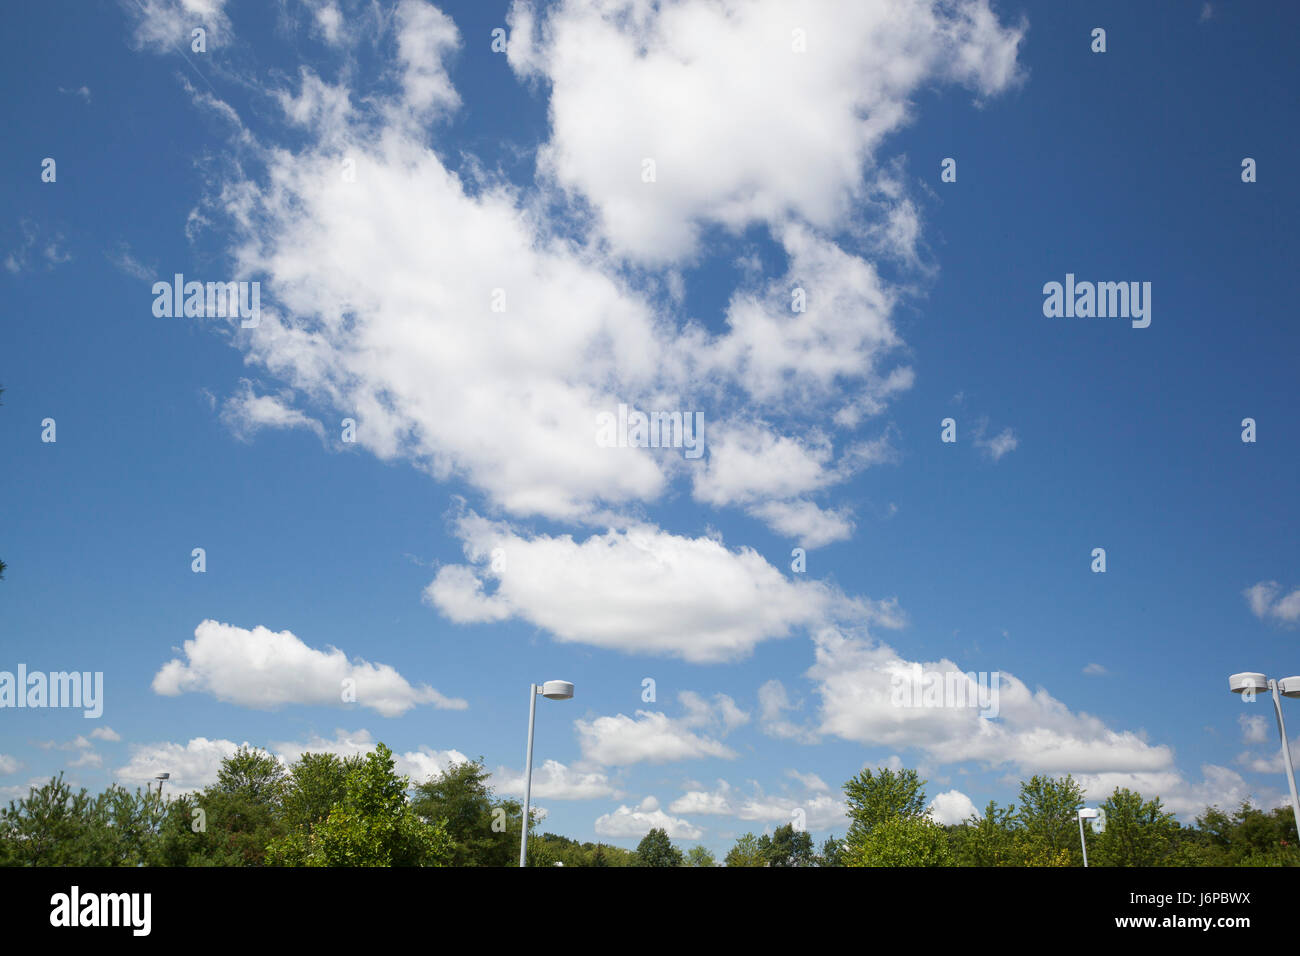 Fair weather cloud formations in Michigan - Stock Image